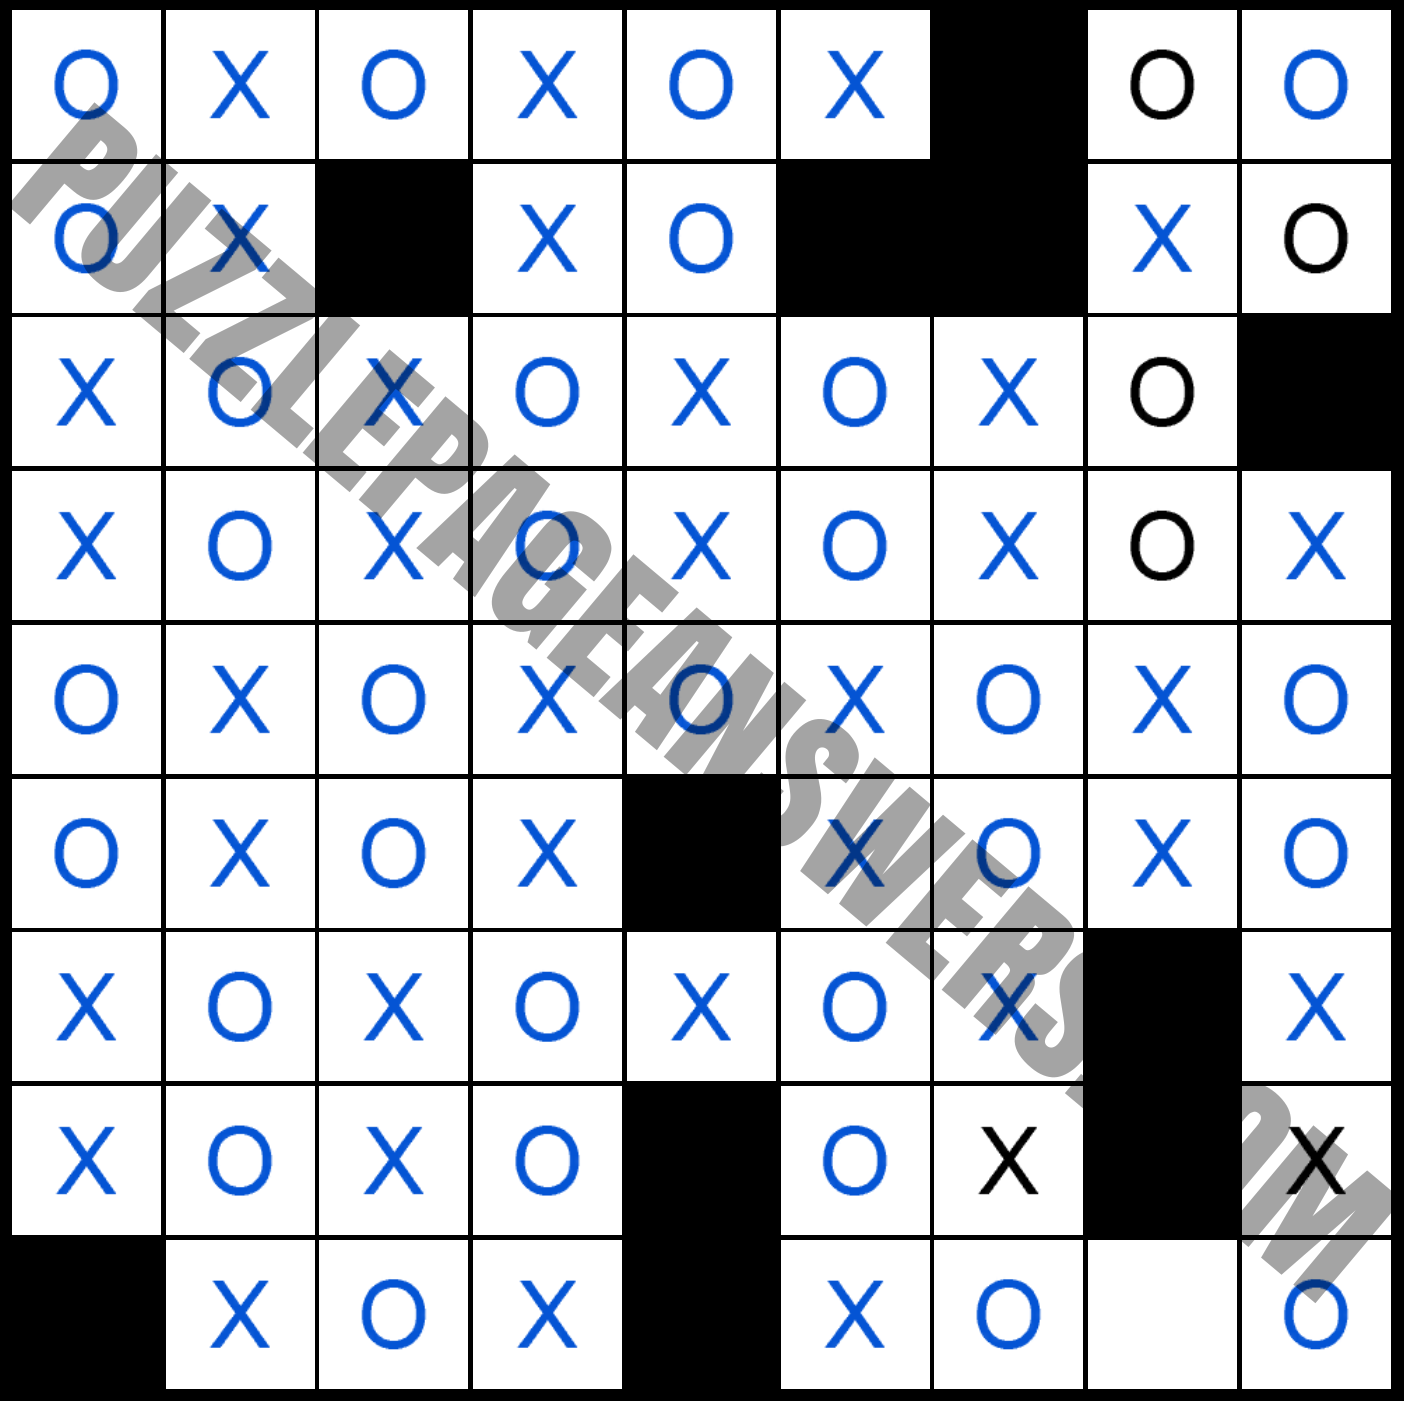 Puzzle Page Os And Xs December 10 2020 Answers Puzzlepageanswers Com